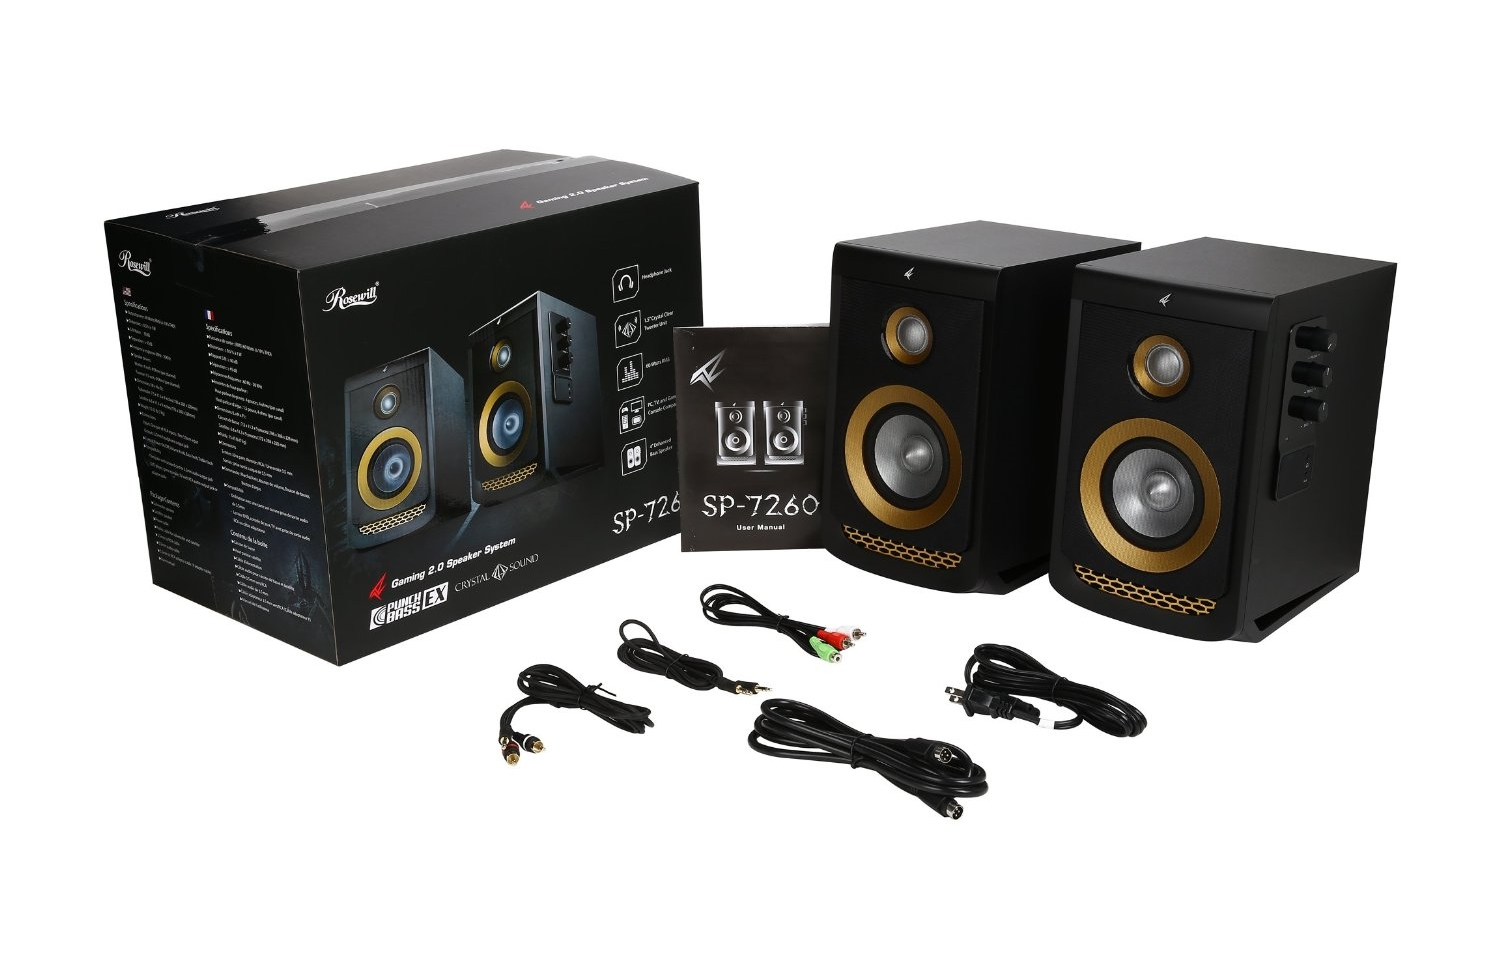 SP-7260 60-Watt Multimedia Speakers